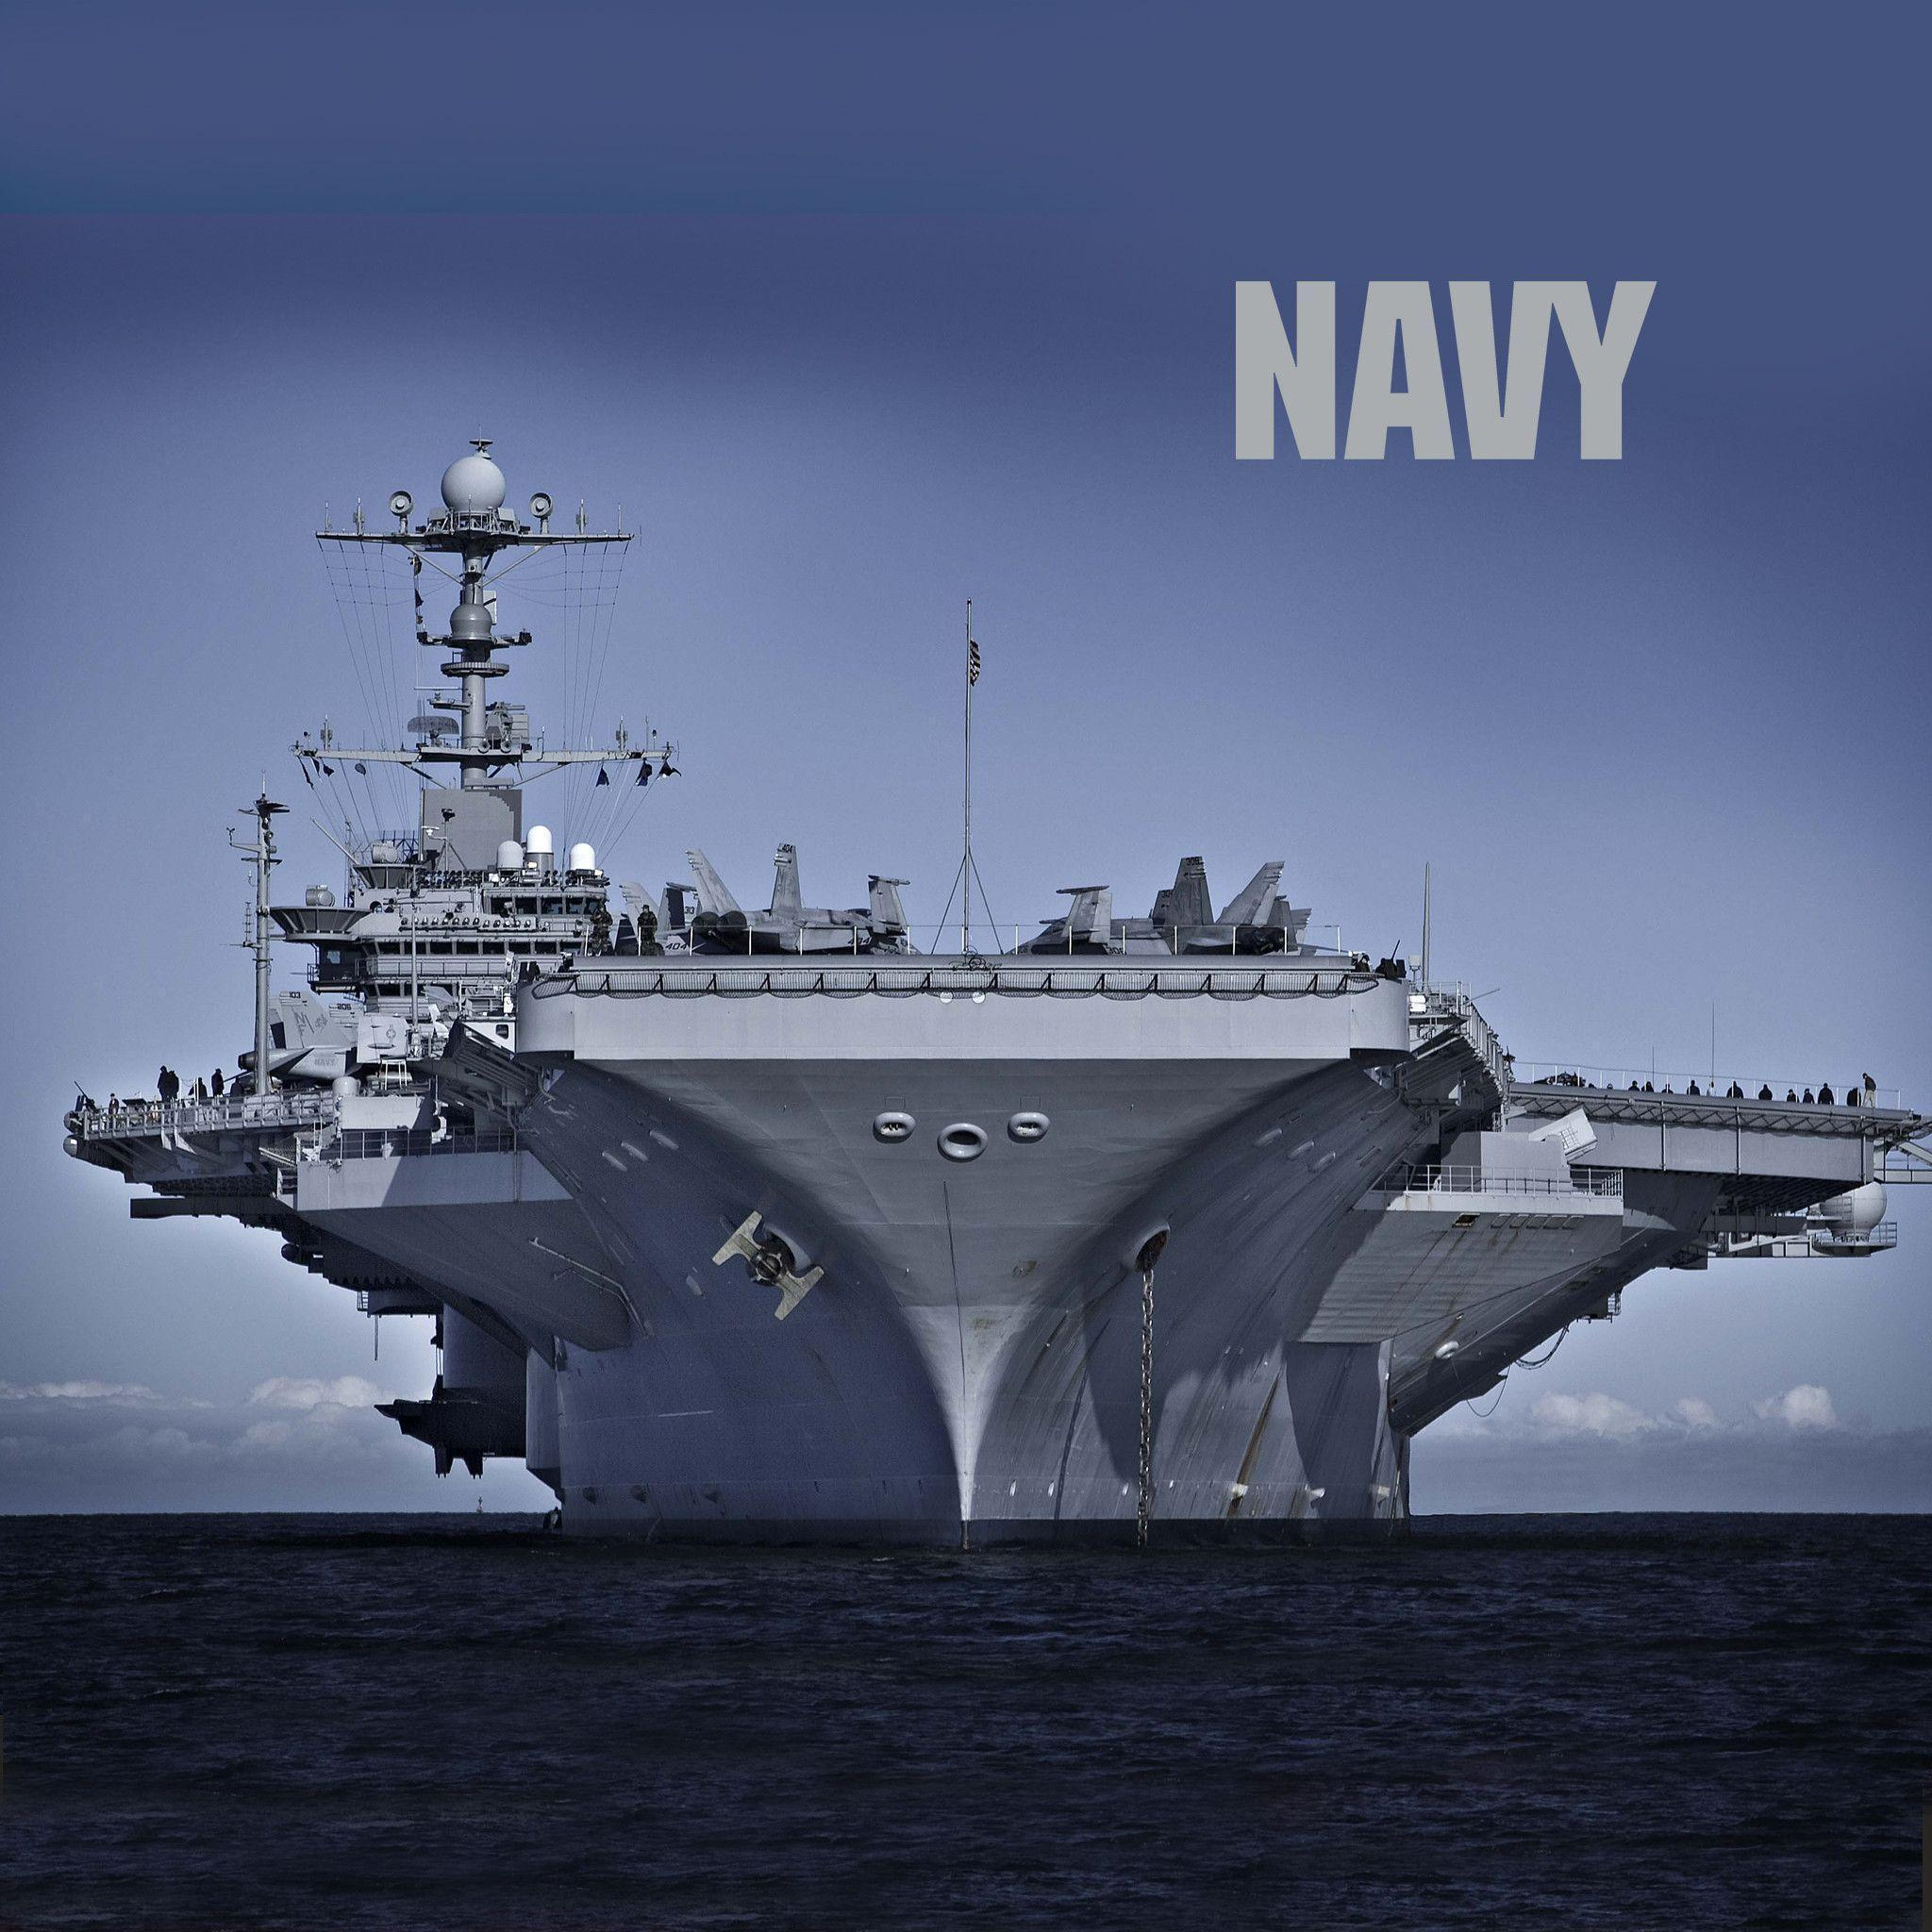 US Navy Wallpapers